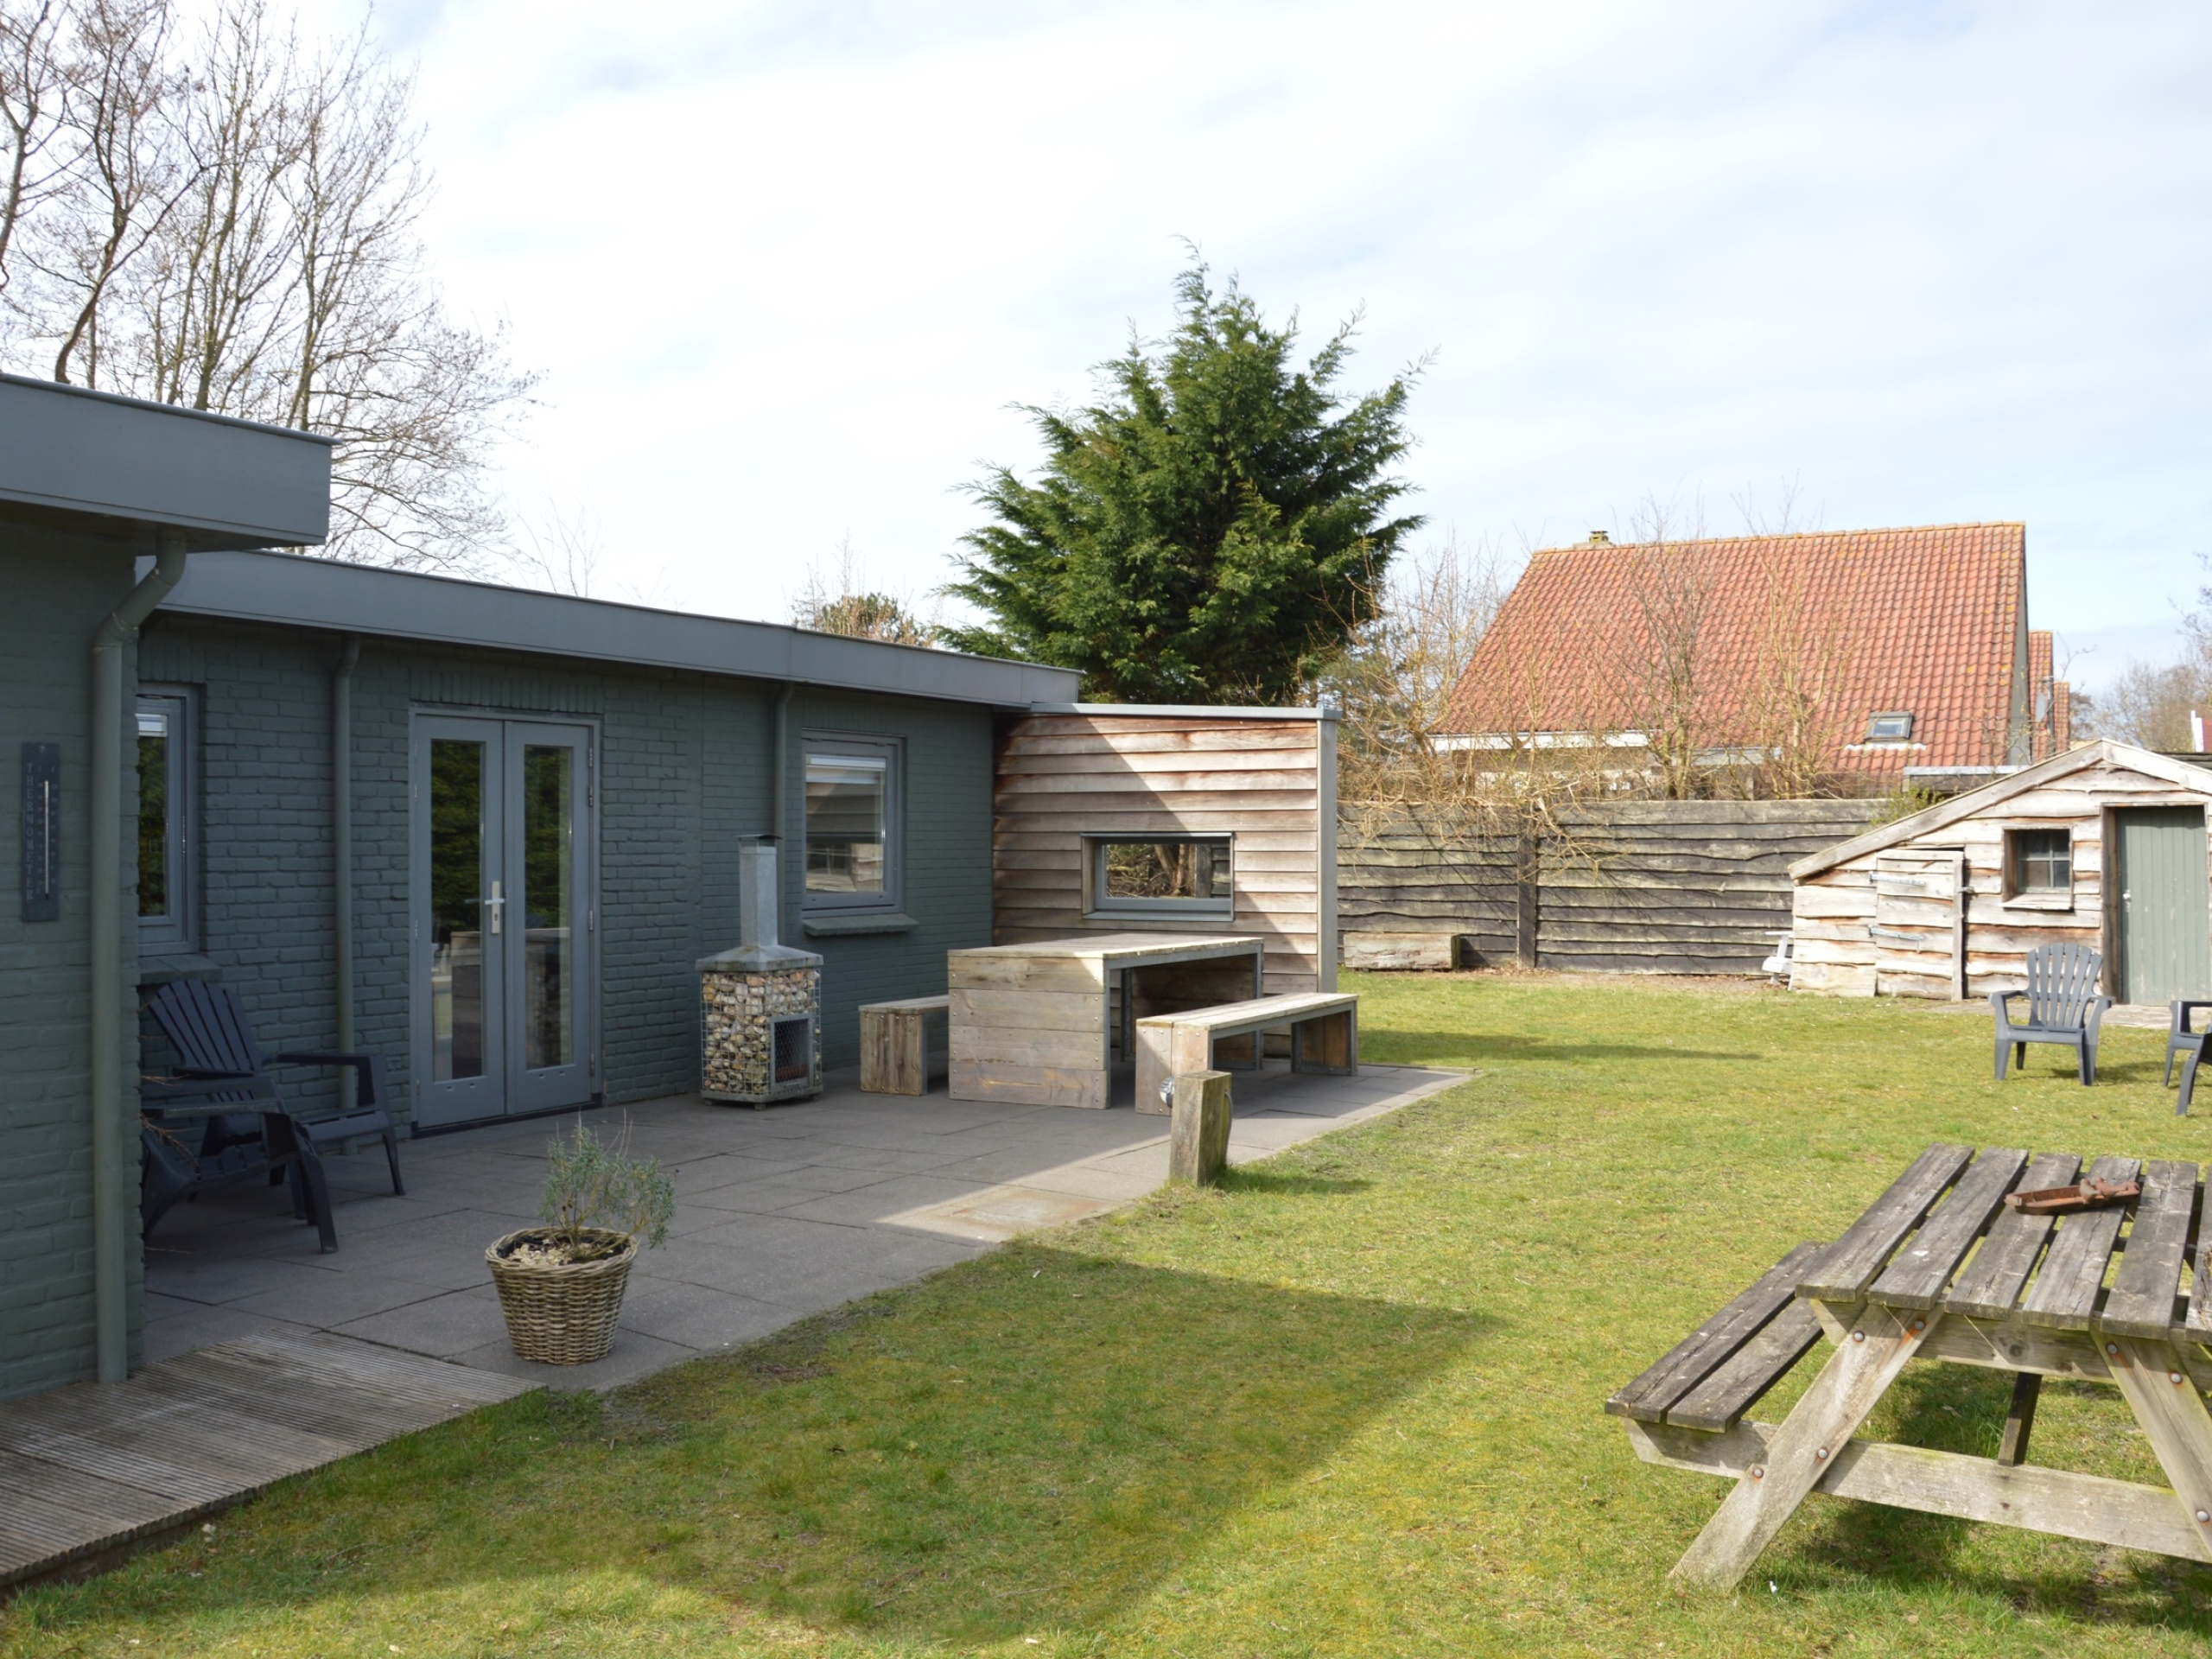 Trendy and comfortable bungalow with lots of privacy in forest De Dennen